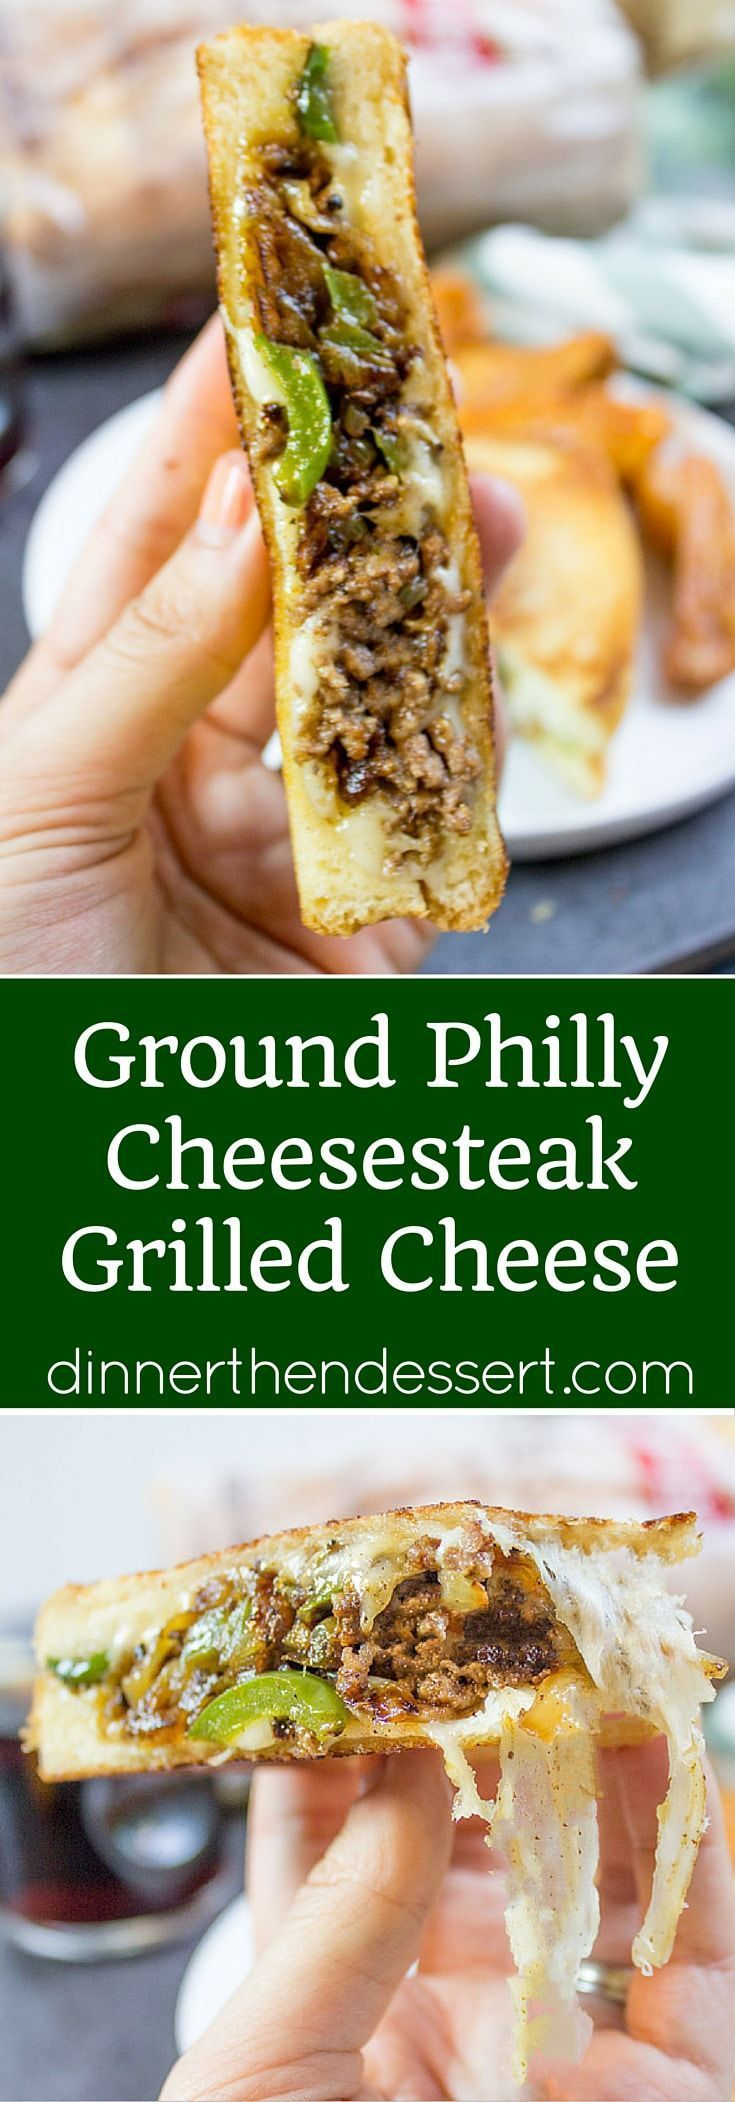 Ground Philly Cheesesteak Grilled Cheese made with bell